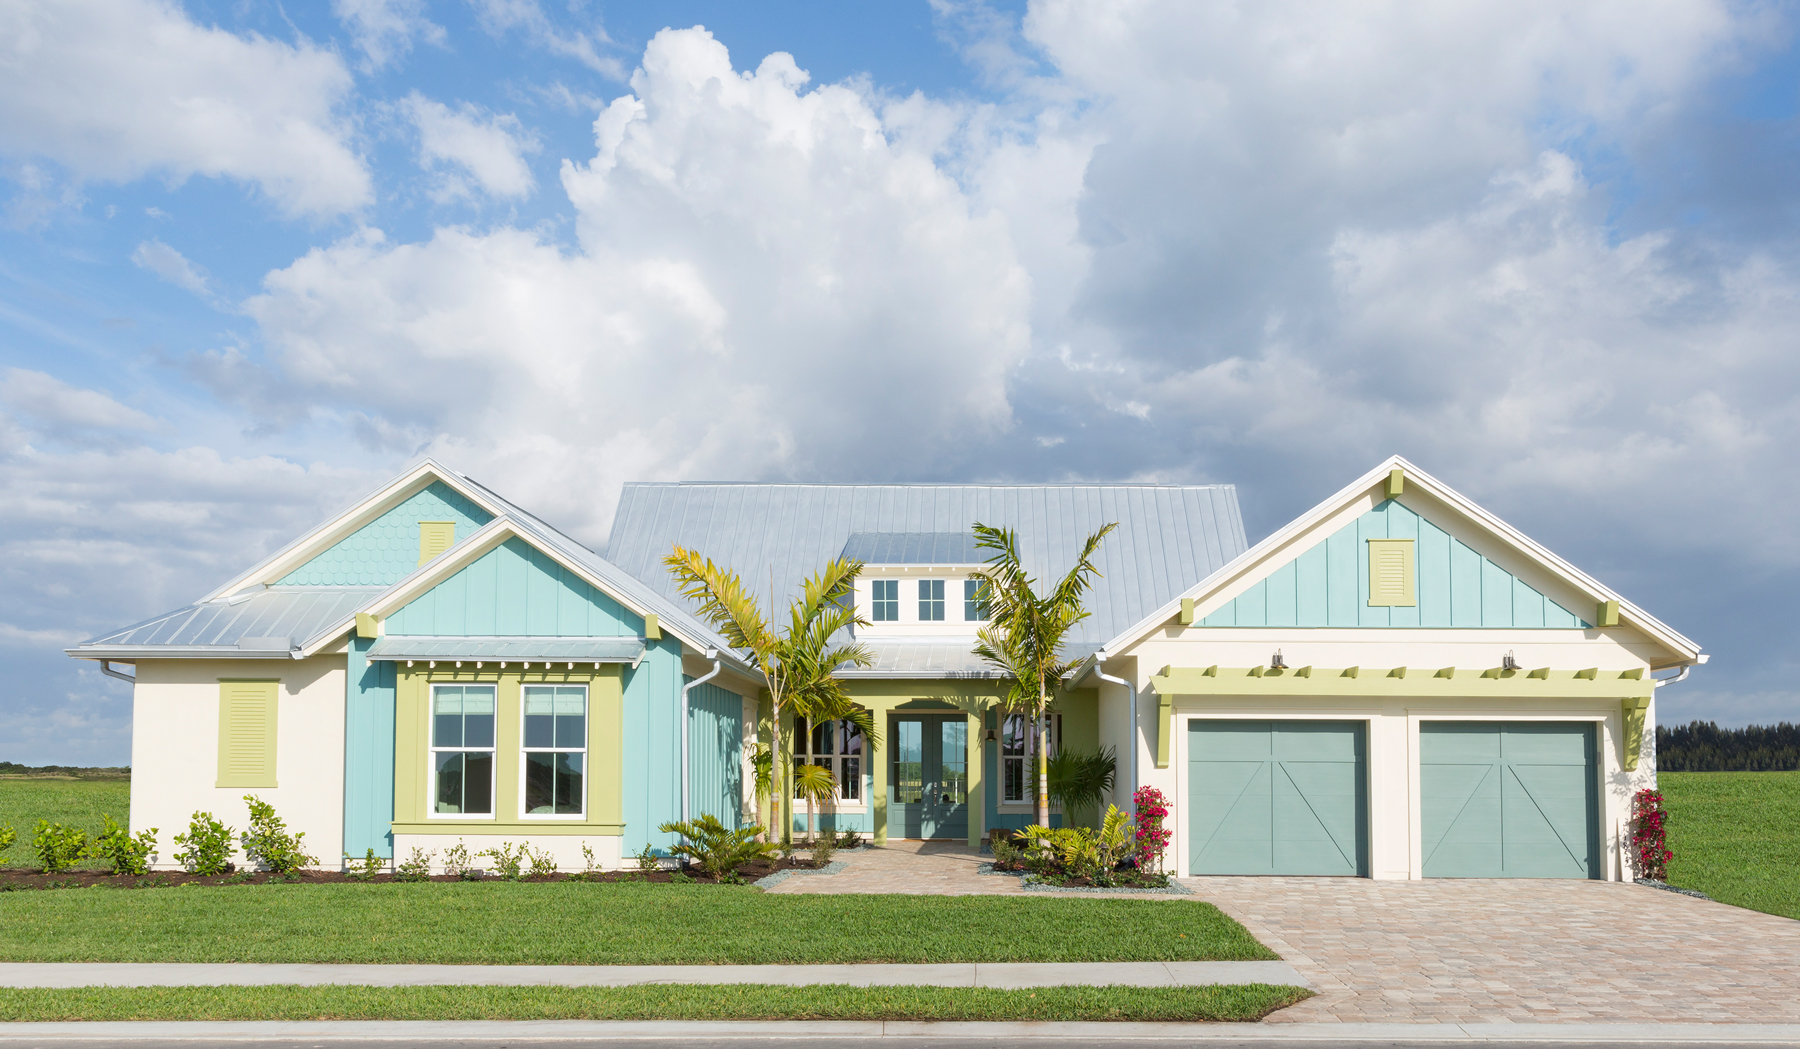 Board and batten exteriors - A colorful house with board and batten siding